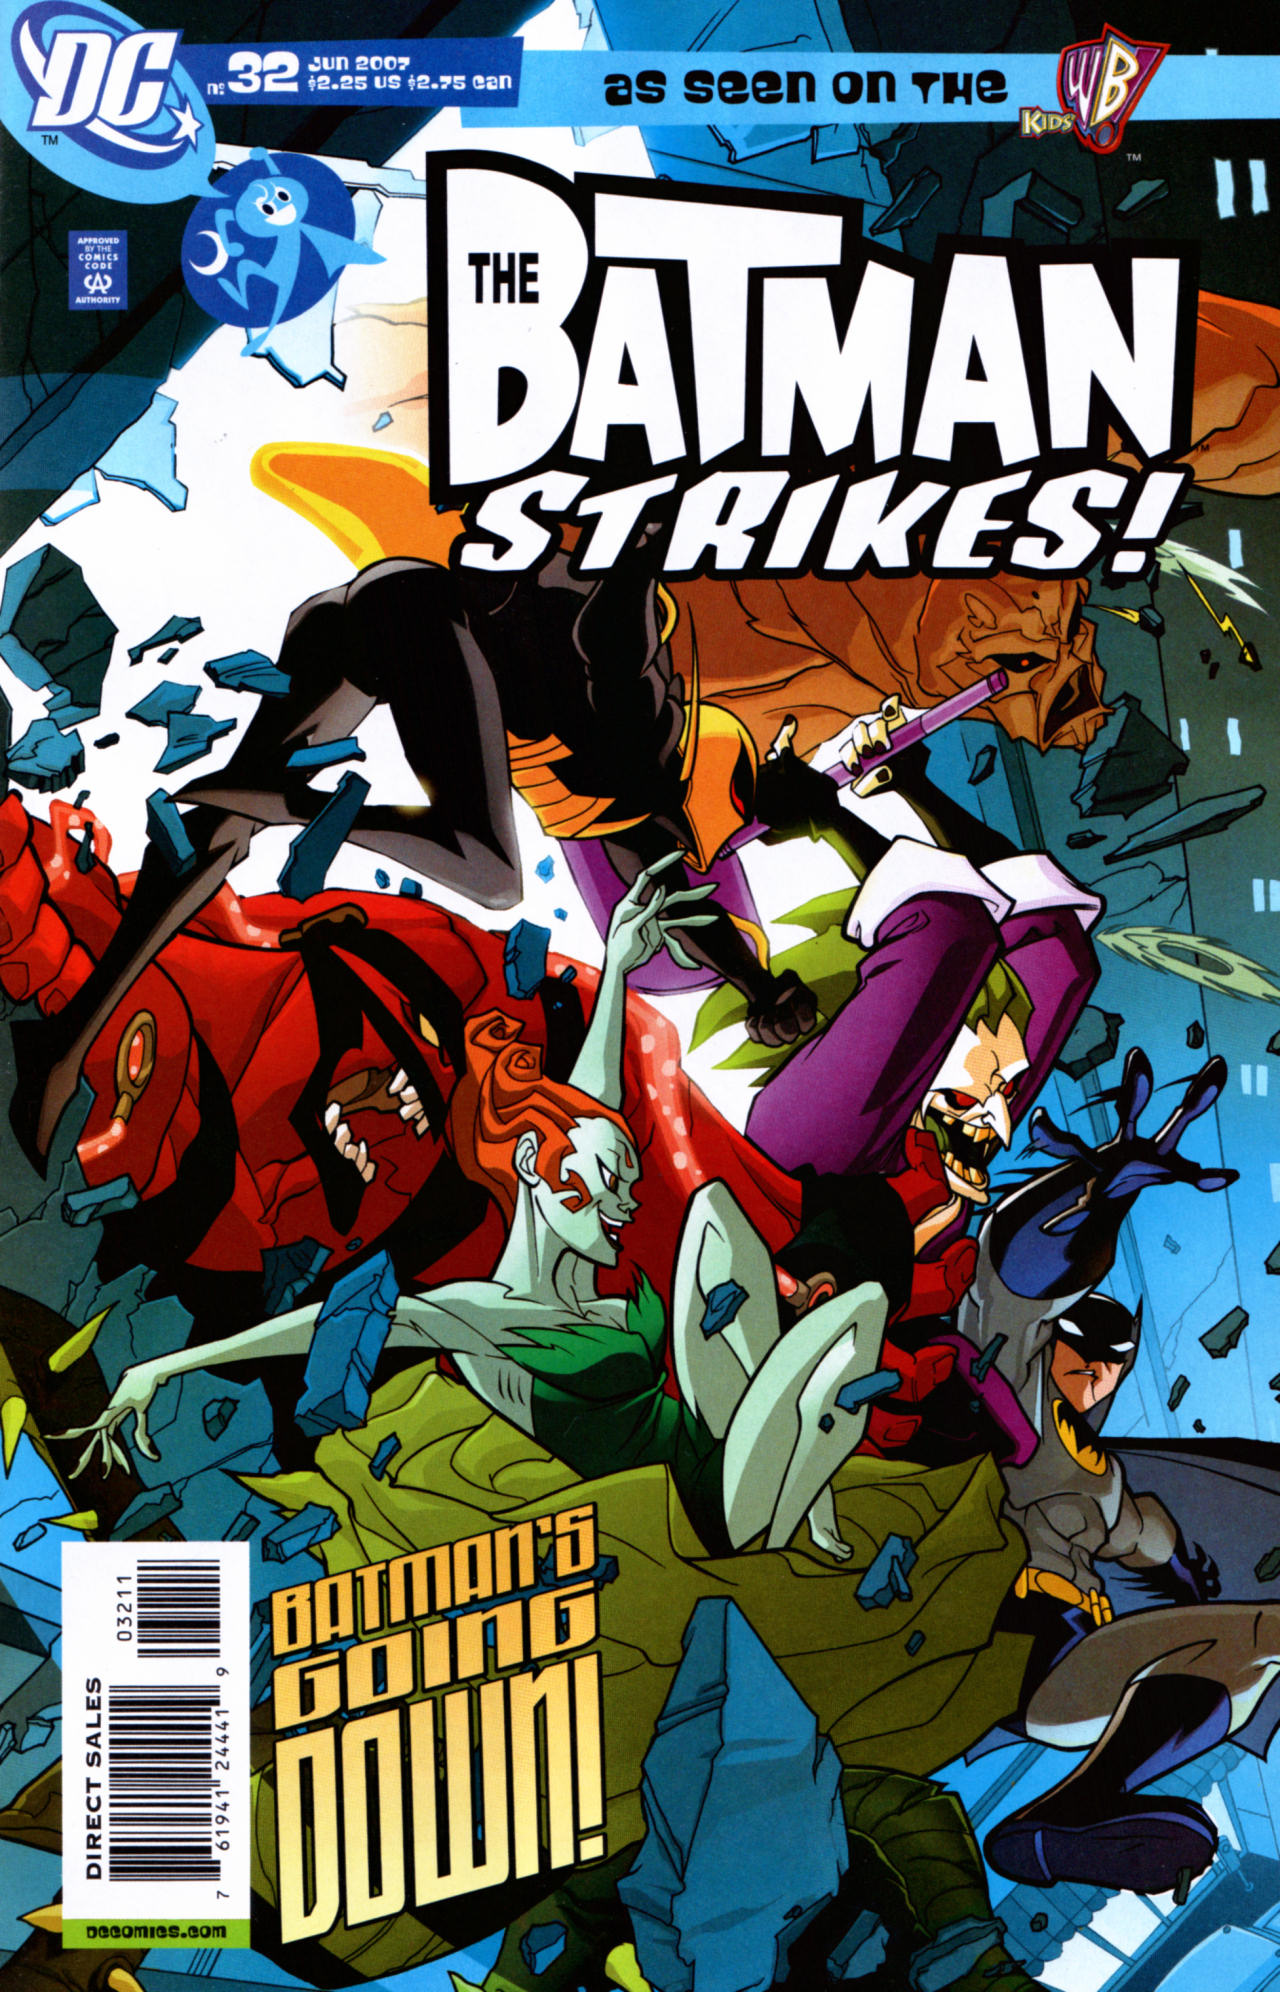 The Batman Strikes! Vol 1 32